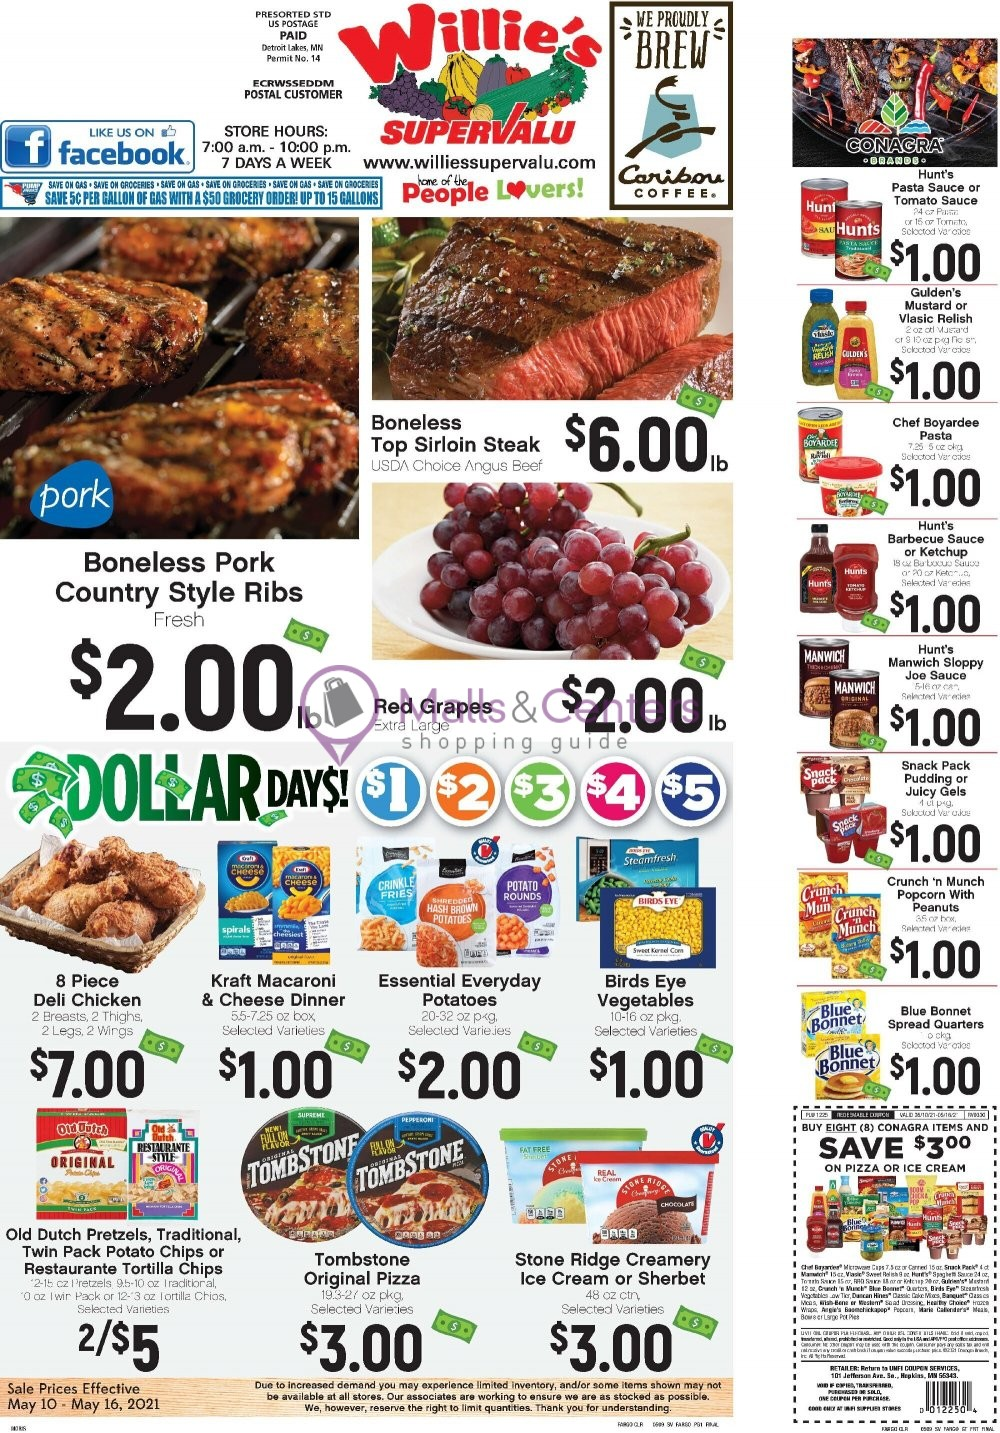 weekly ads Willie's Supervalu - page 1 - mallscenters.com